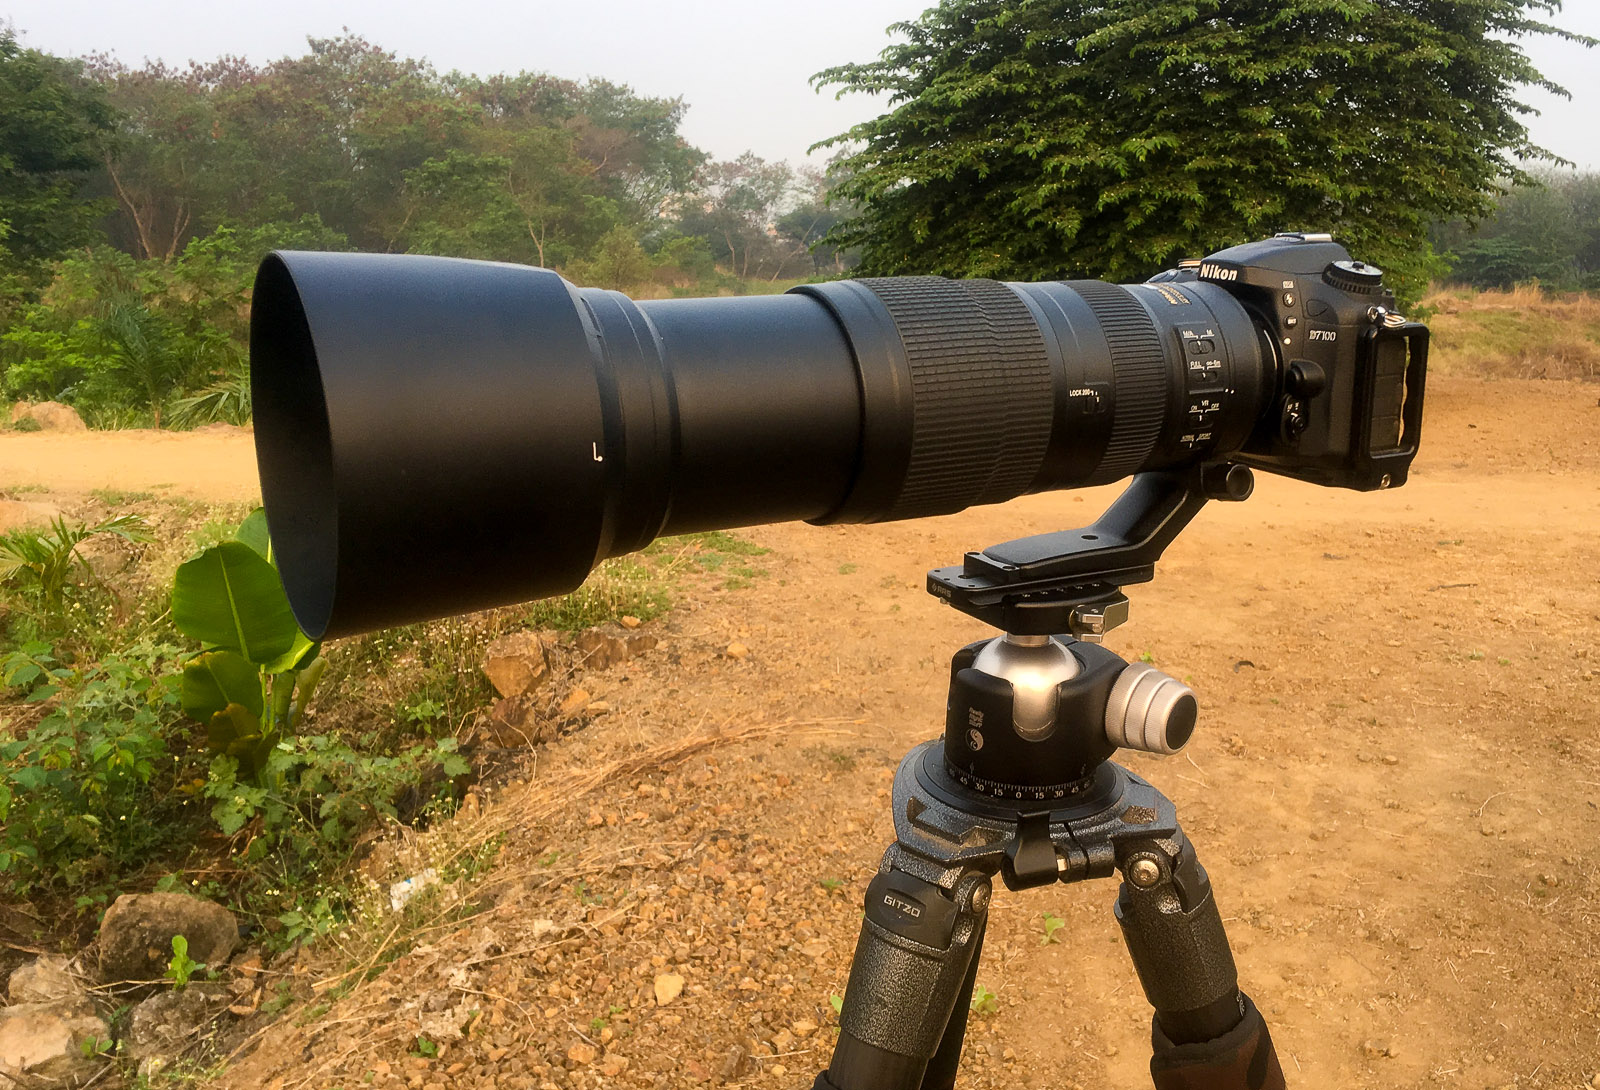 Image: Nikon 200-500 f/5.6 lens mounted on a camera, zoomed to 500mm